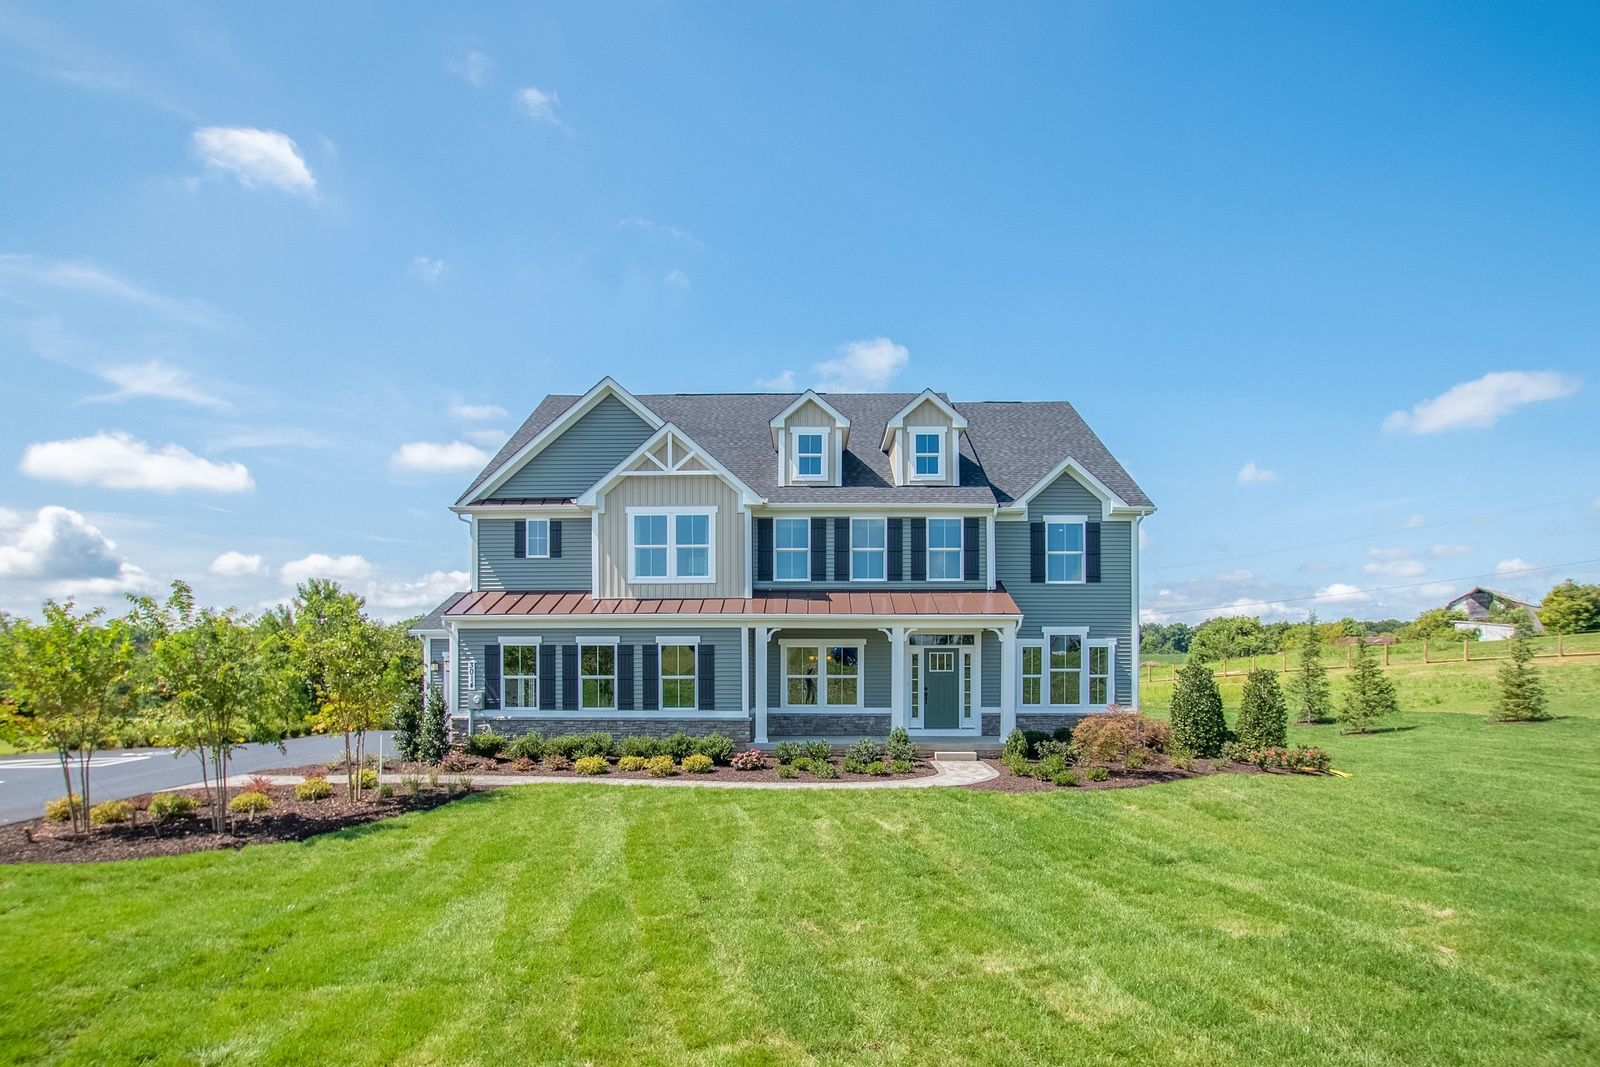 Single Family for Sale at Cannon Hill - Versailles 50 New Canton Way Upper Freehold, New Jersey 08501 United States